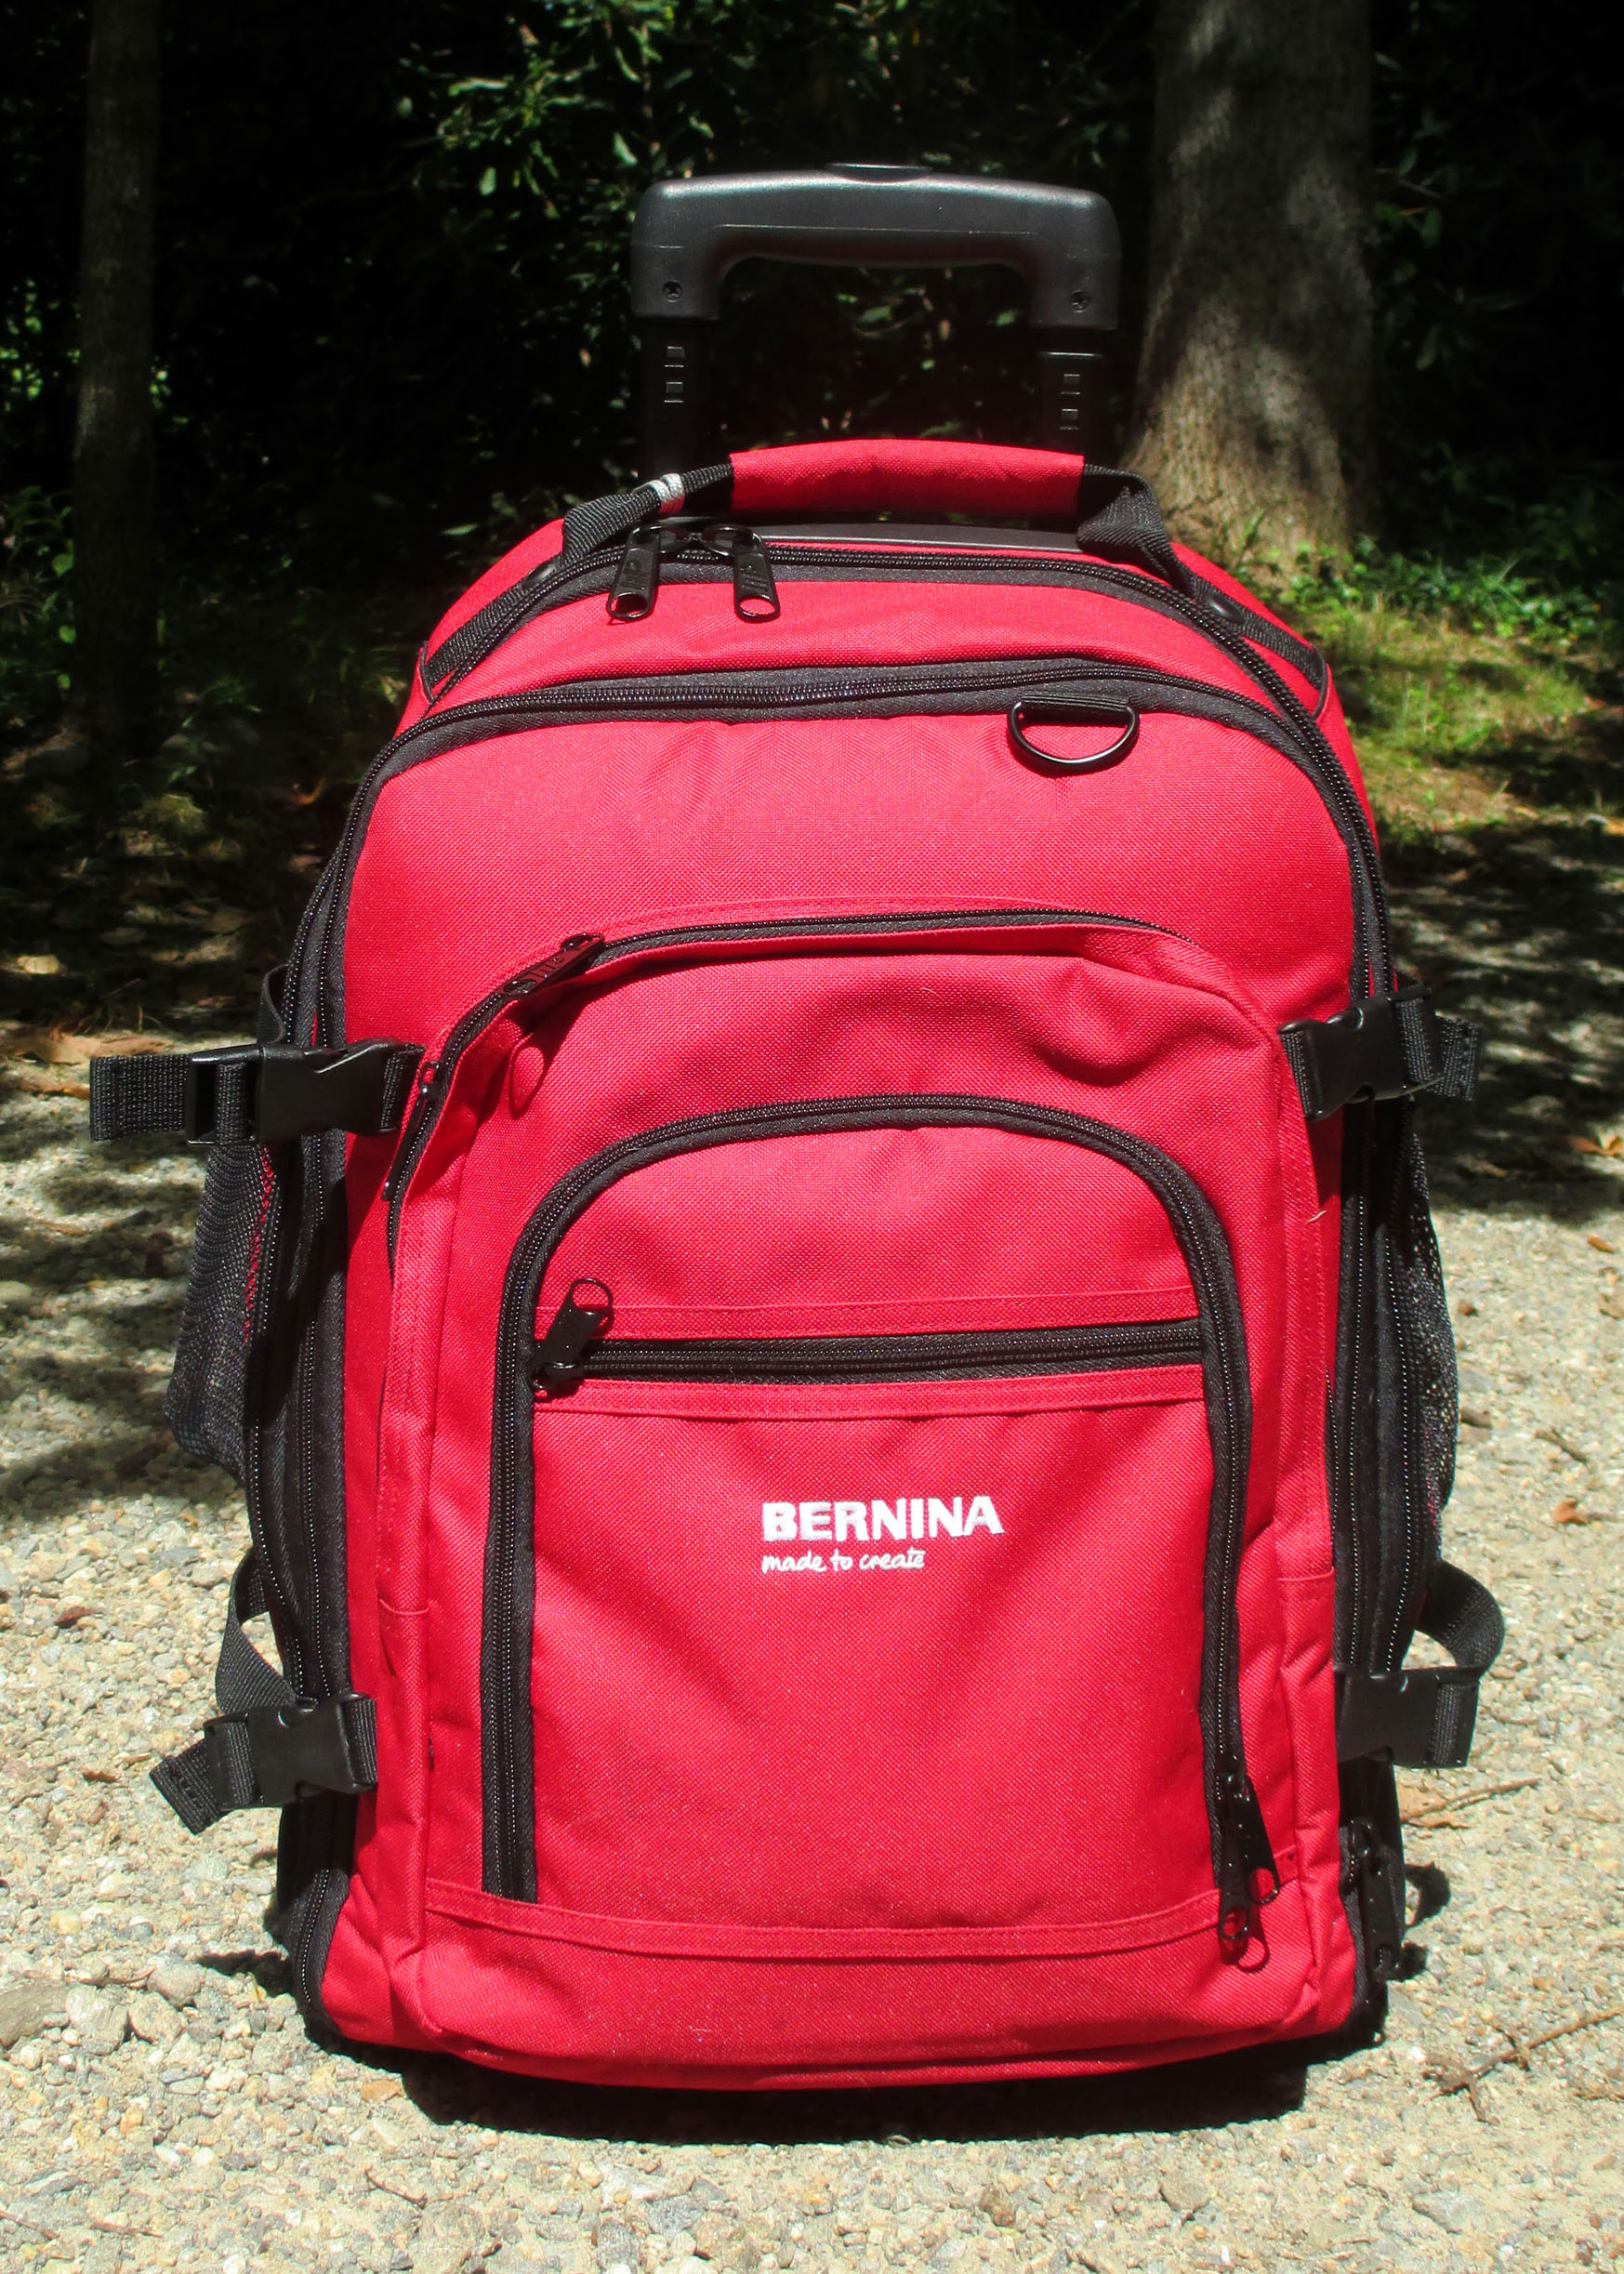 Win a BERNINA back pack!